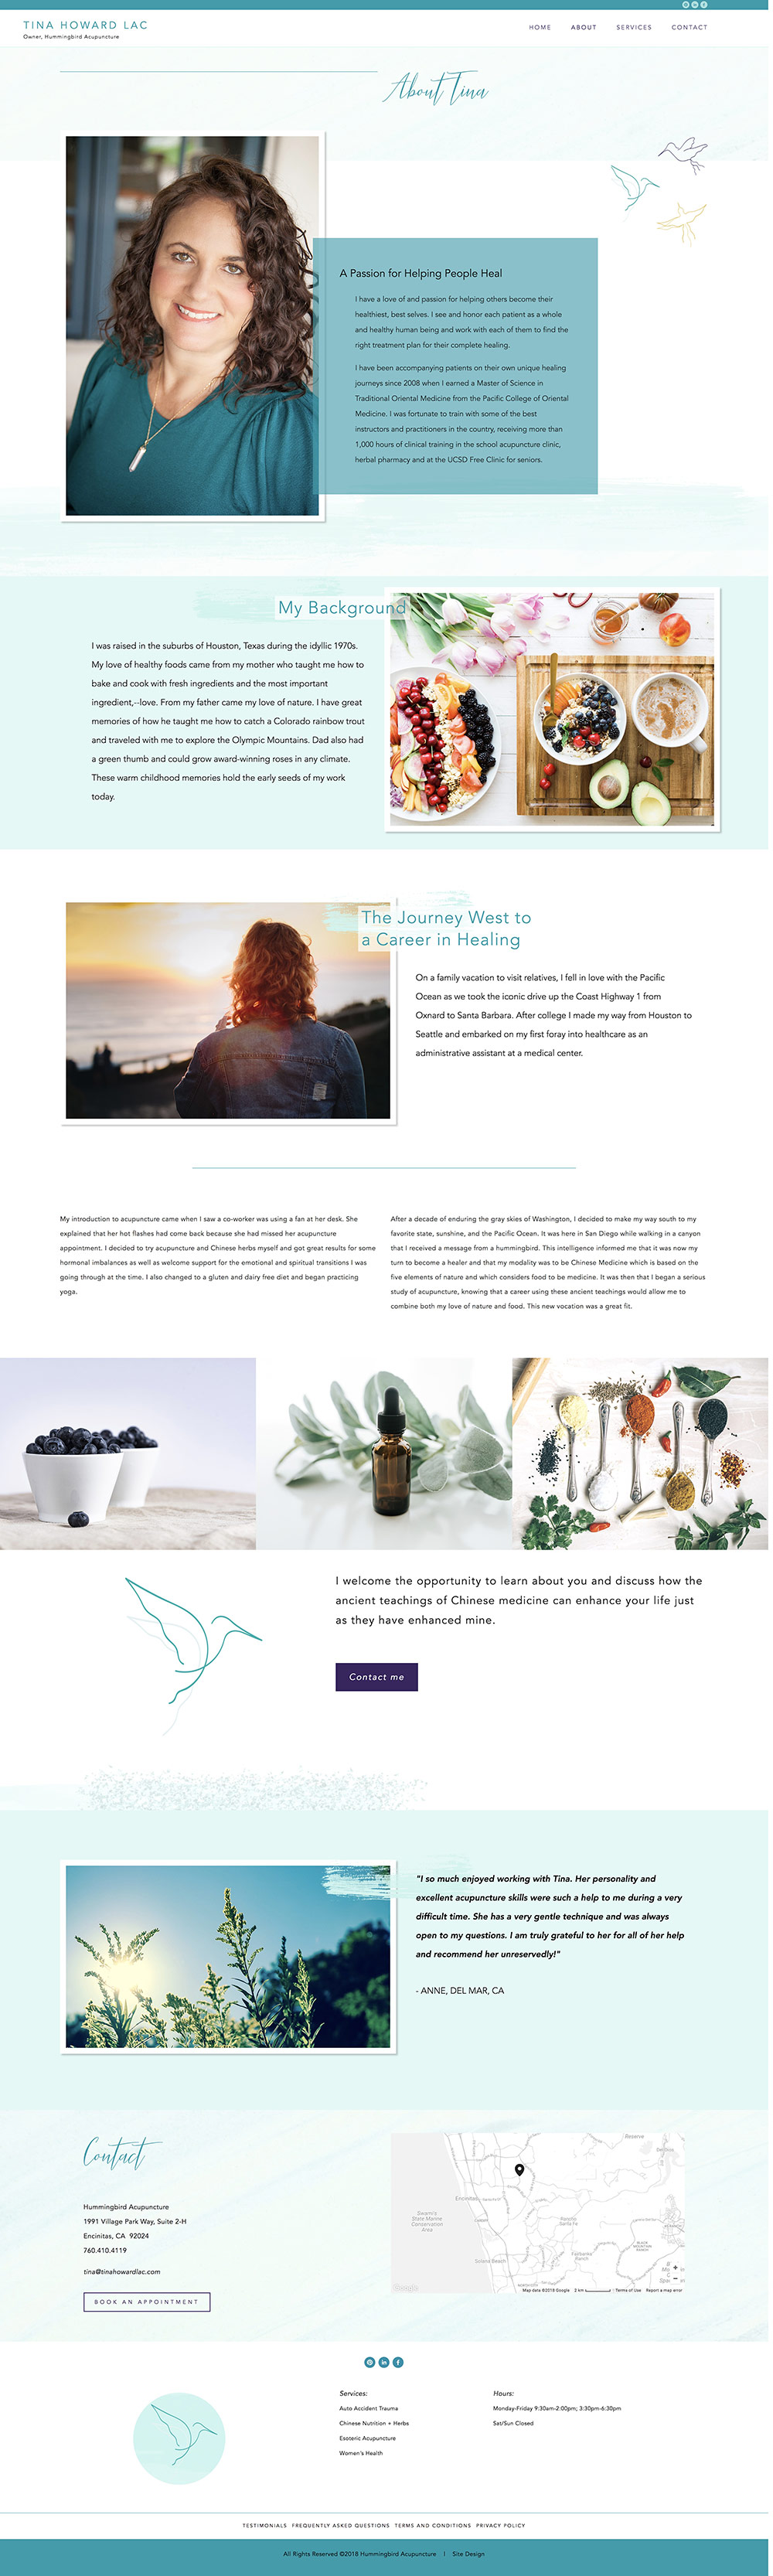 Tina Howard LAC About page | website design by Jodi Neufeld Design